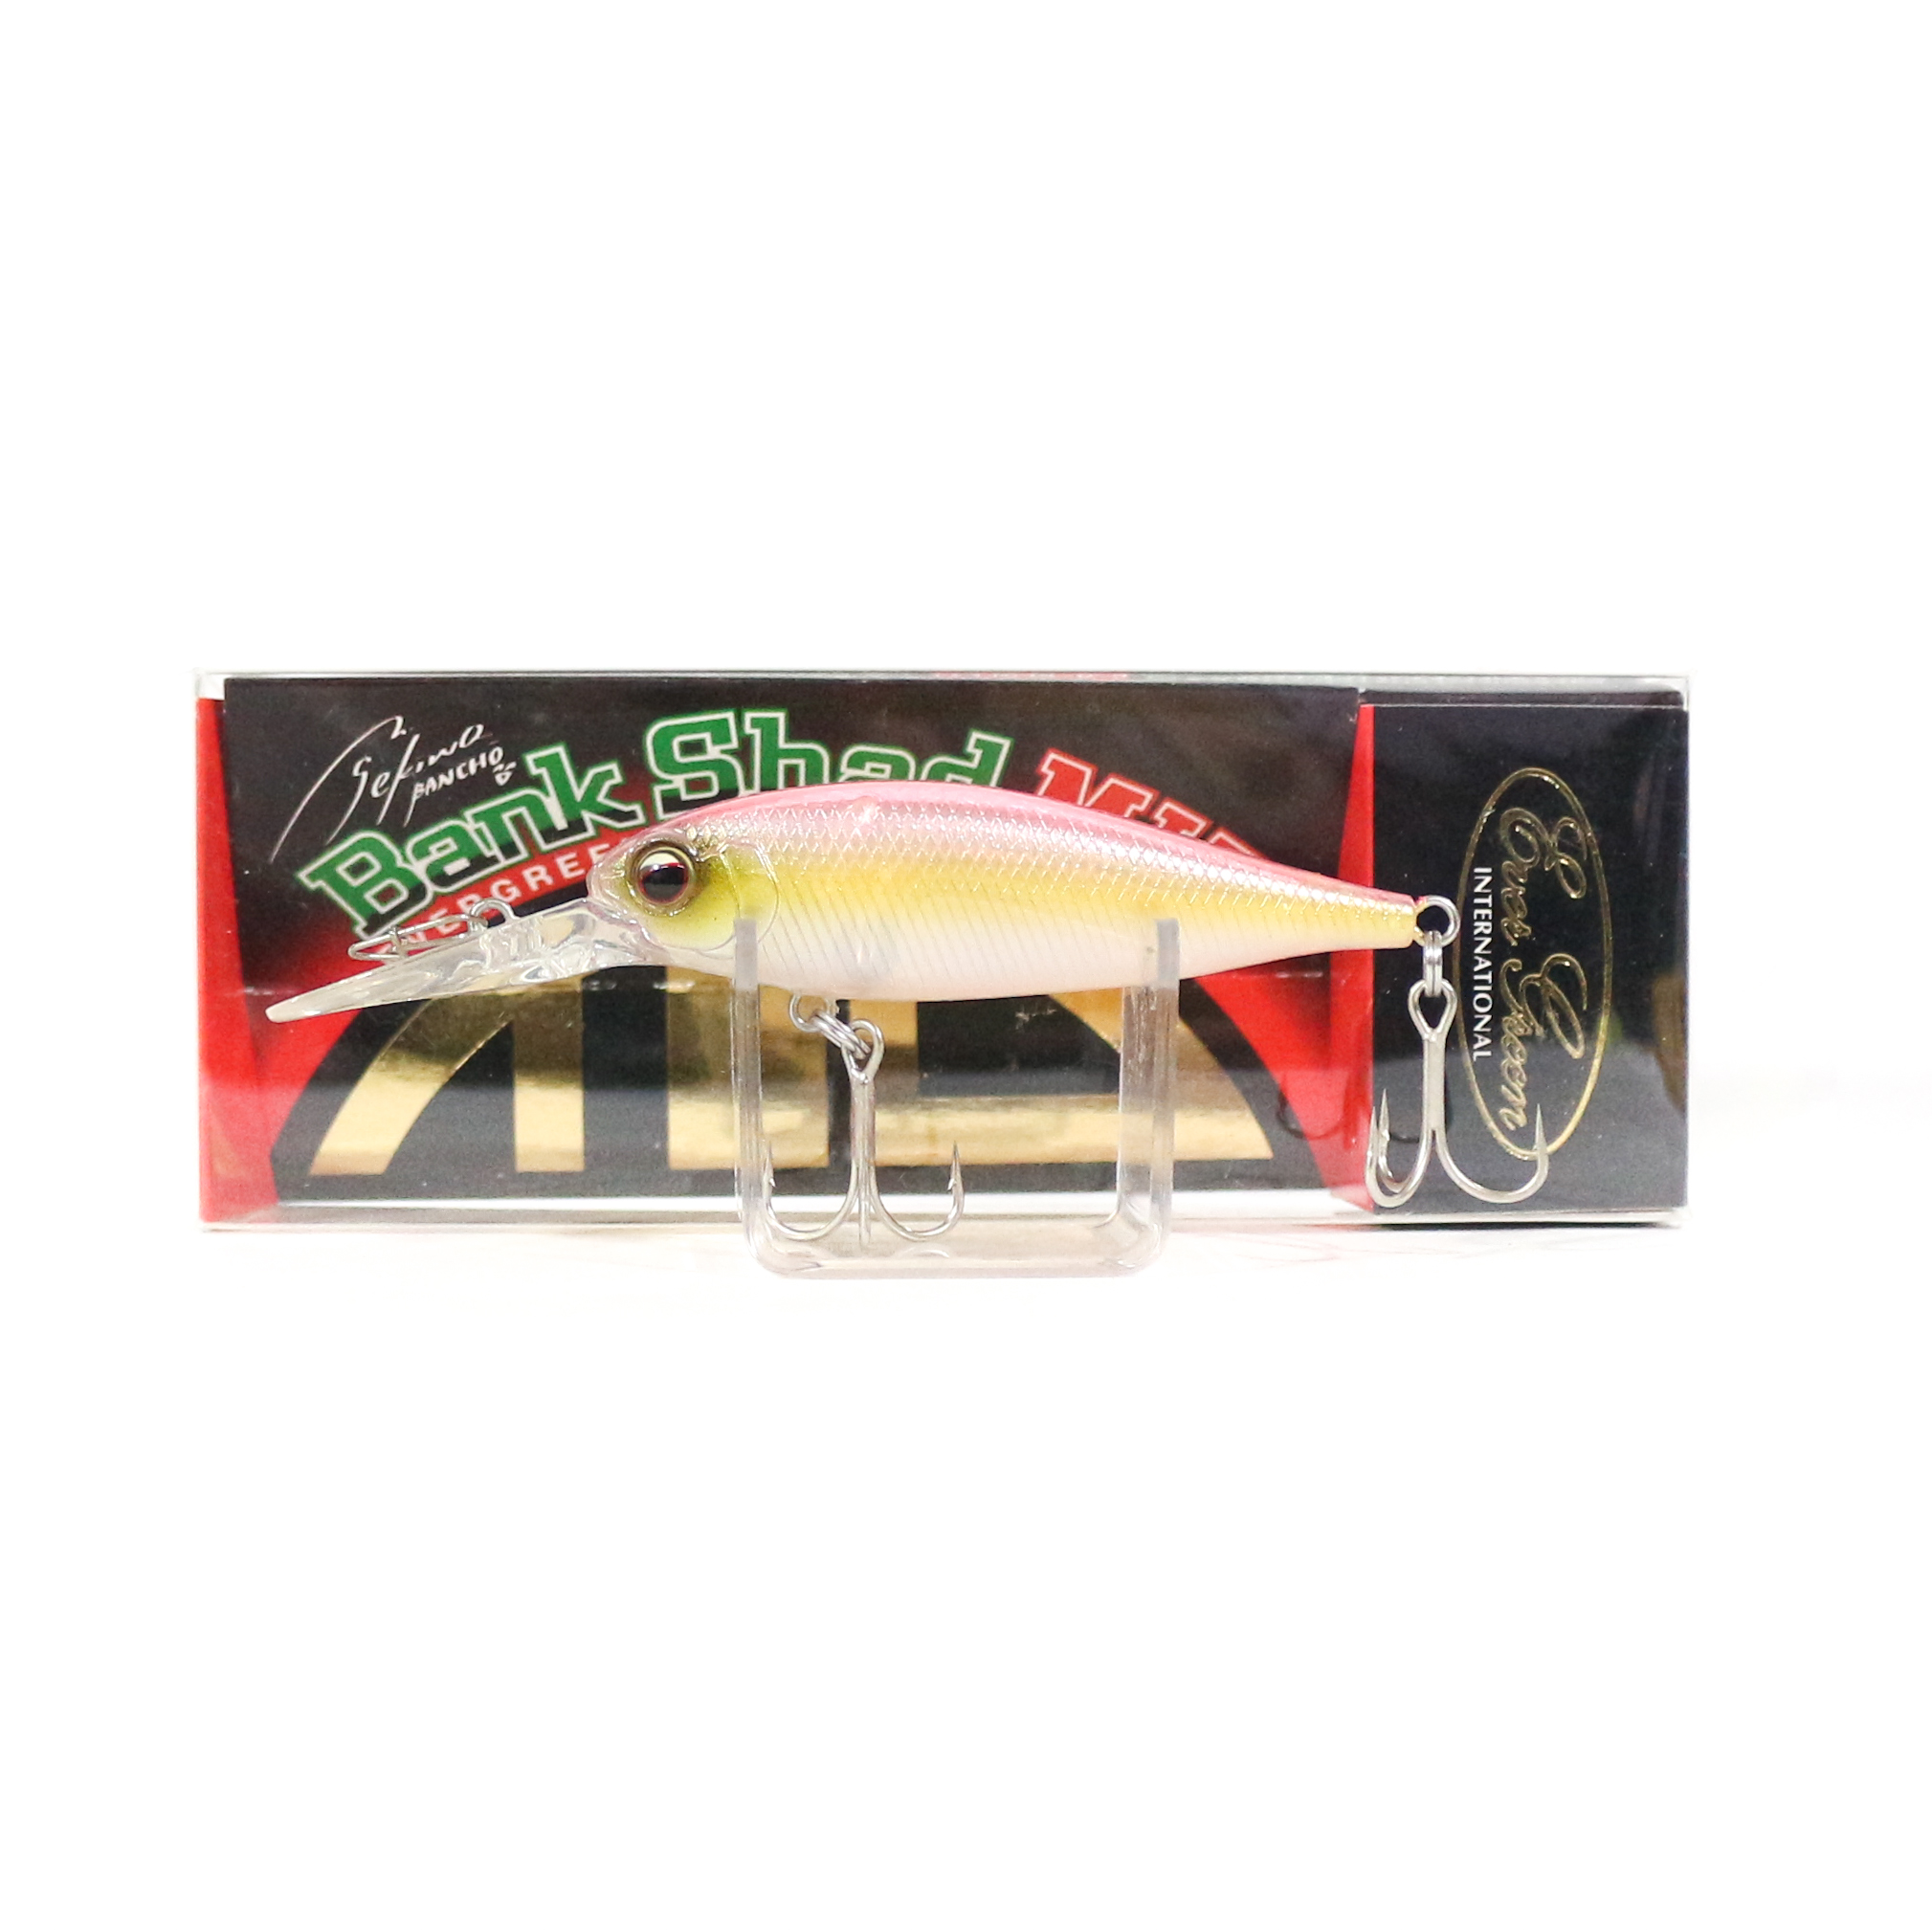 Sale Evergreen Bank Shad Mid Range Floating Lure 54 (8643)